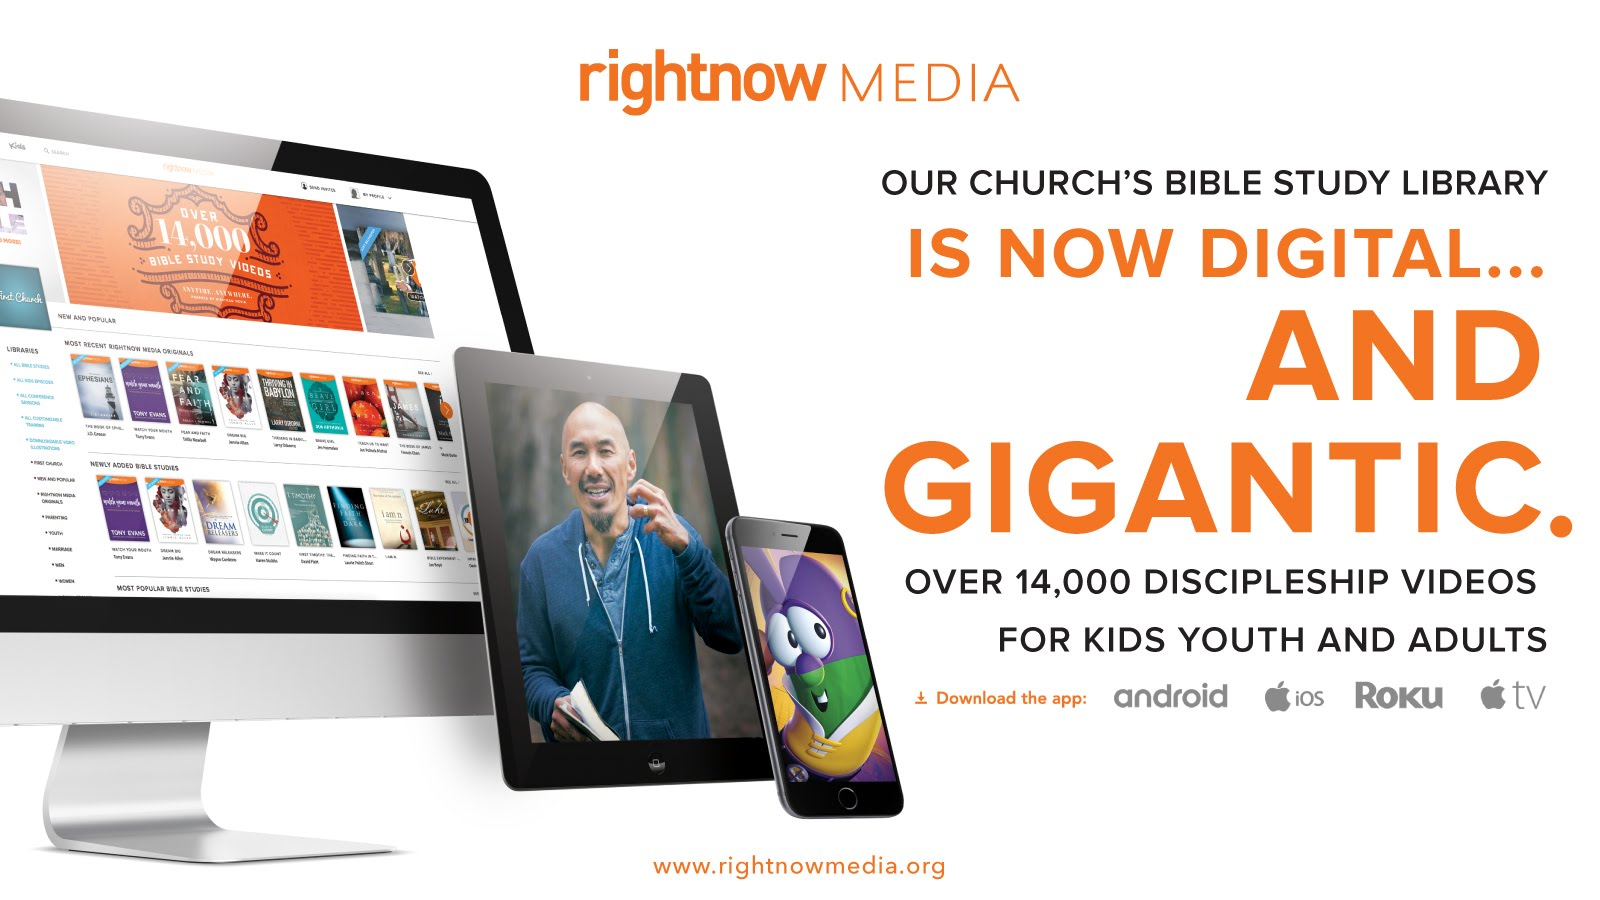 Our Church provides you with excellent free personal growth materials